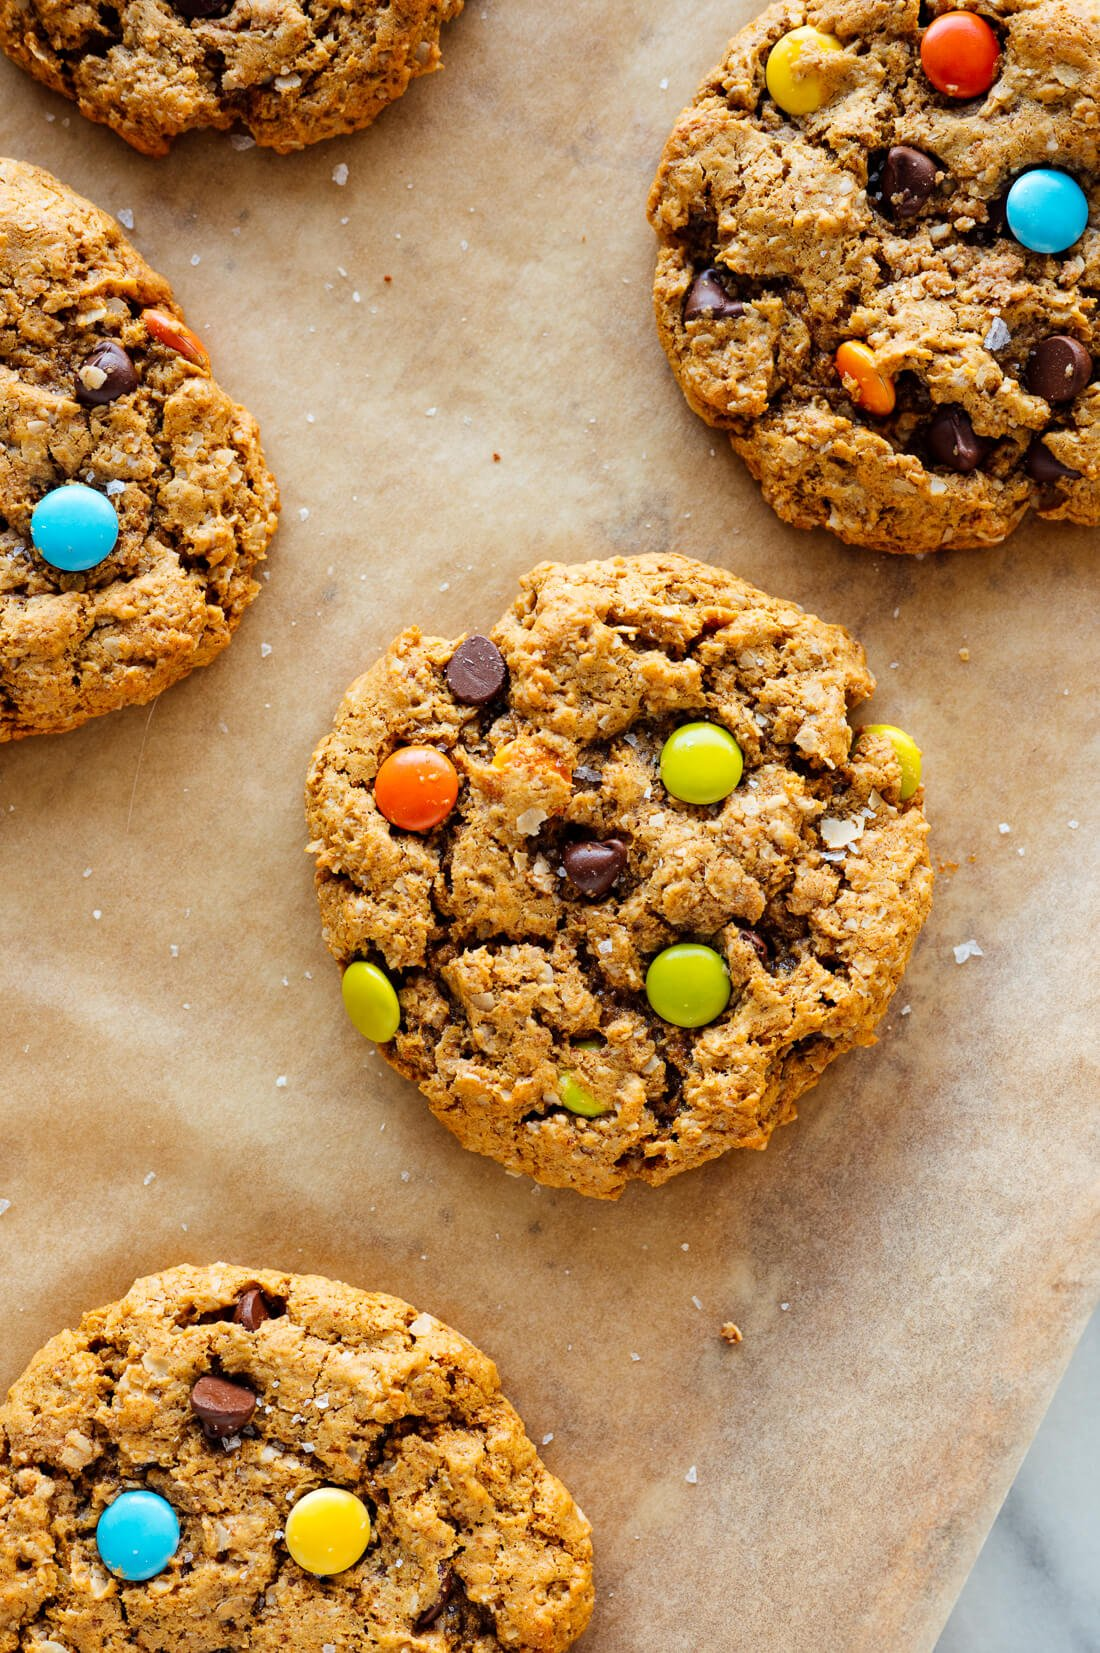 oatmeal peanut butter cookies with chocolate and colored chocolate candies